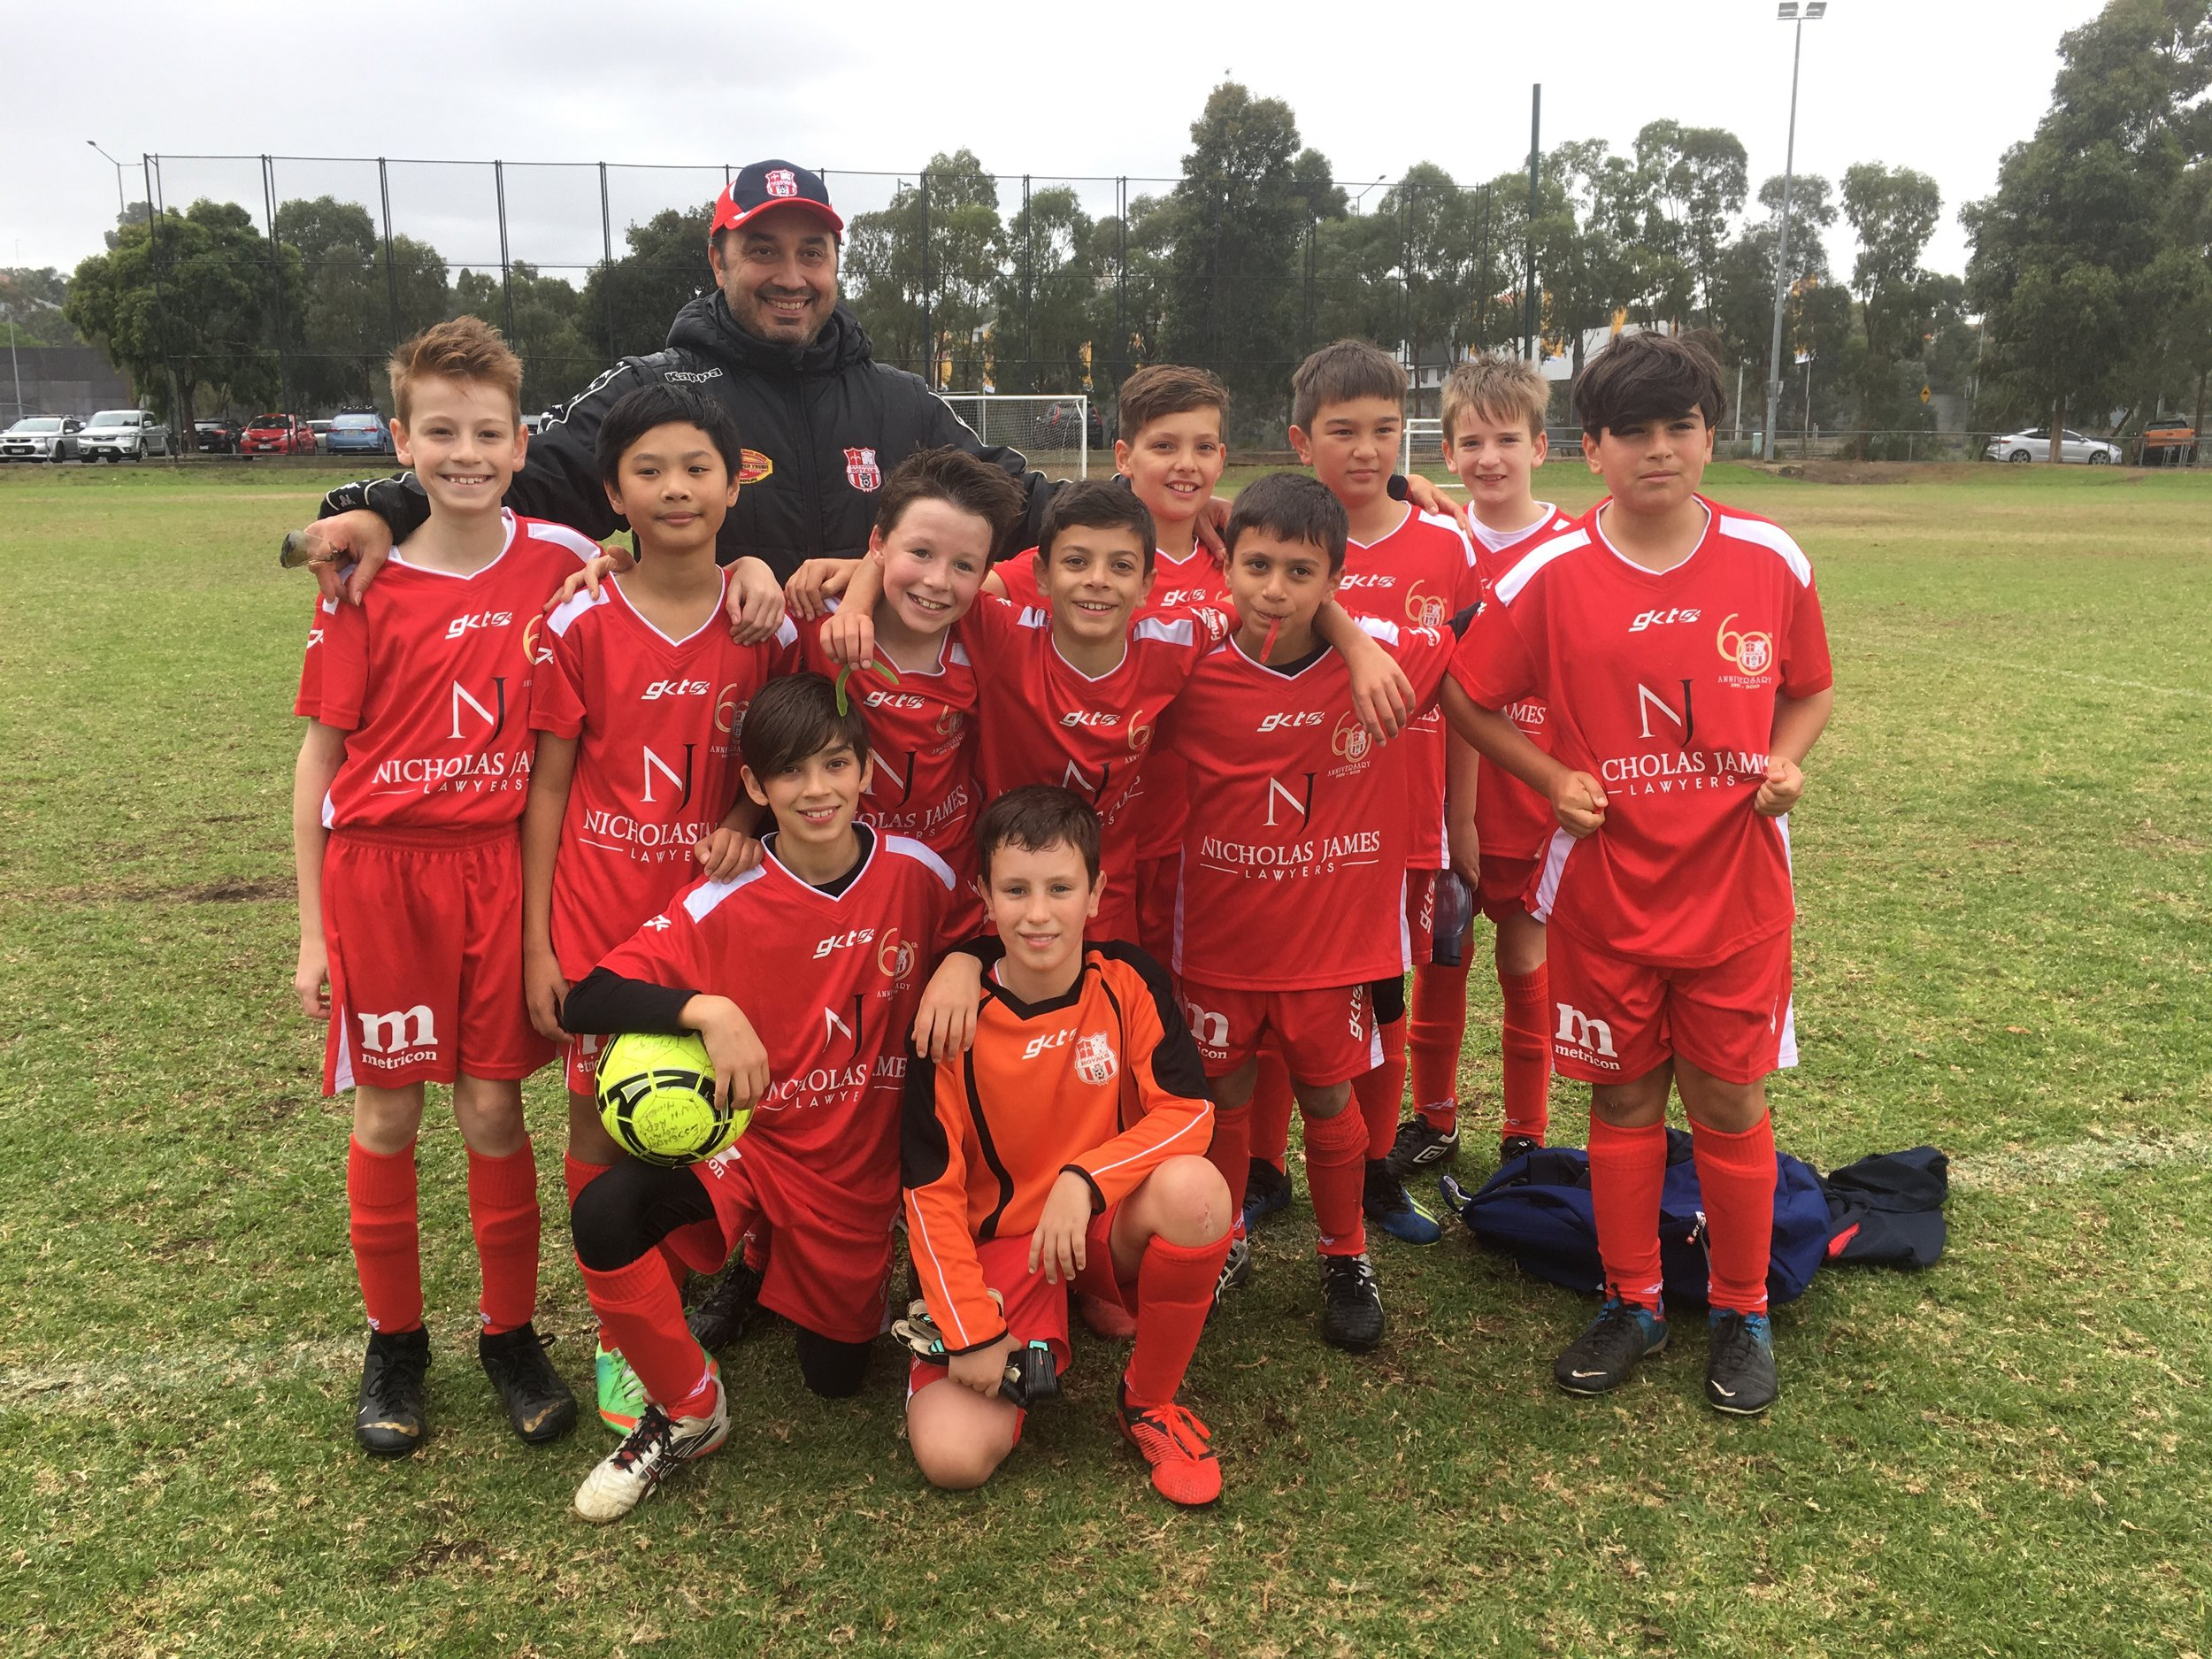 Our under-11 Reds picked up another win this weekend! Thanks for the pic, Sonia La Vita.